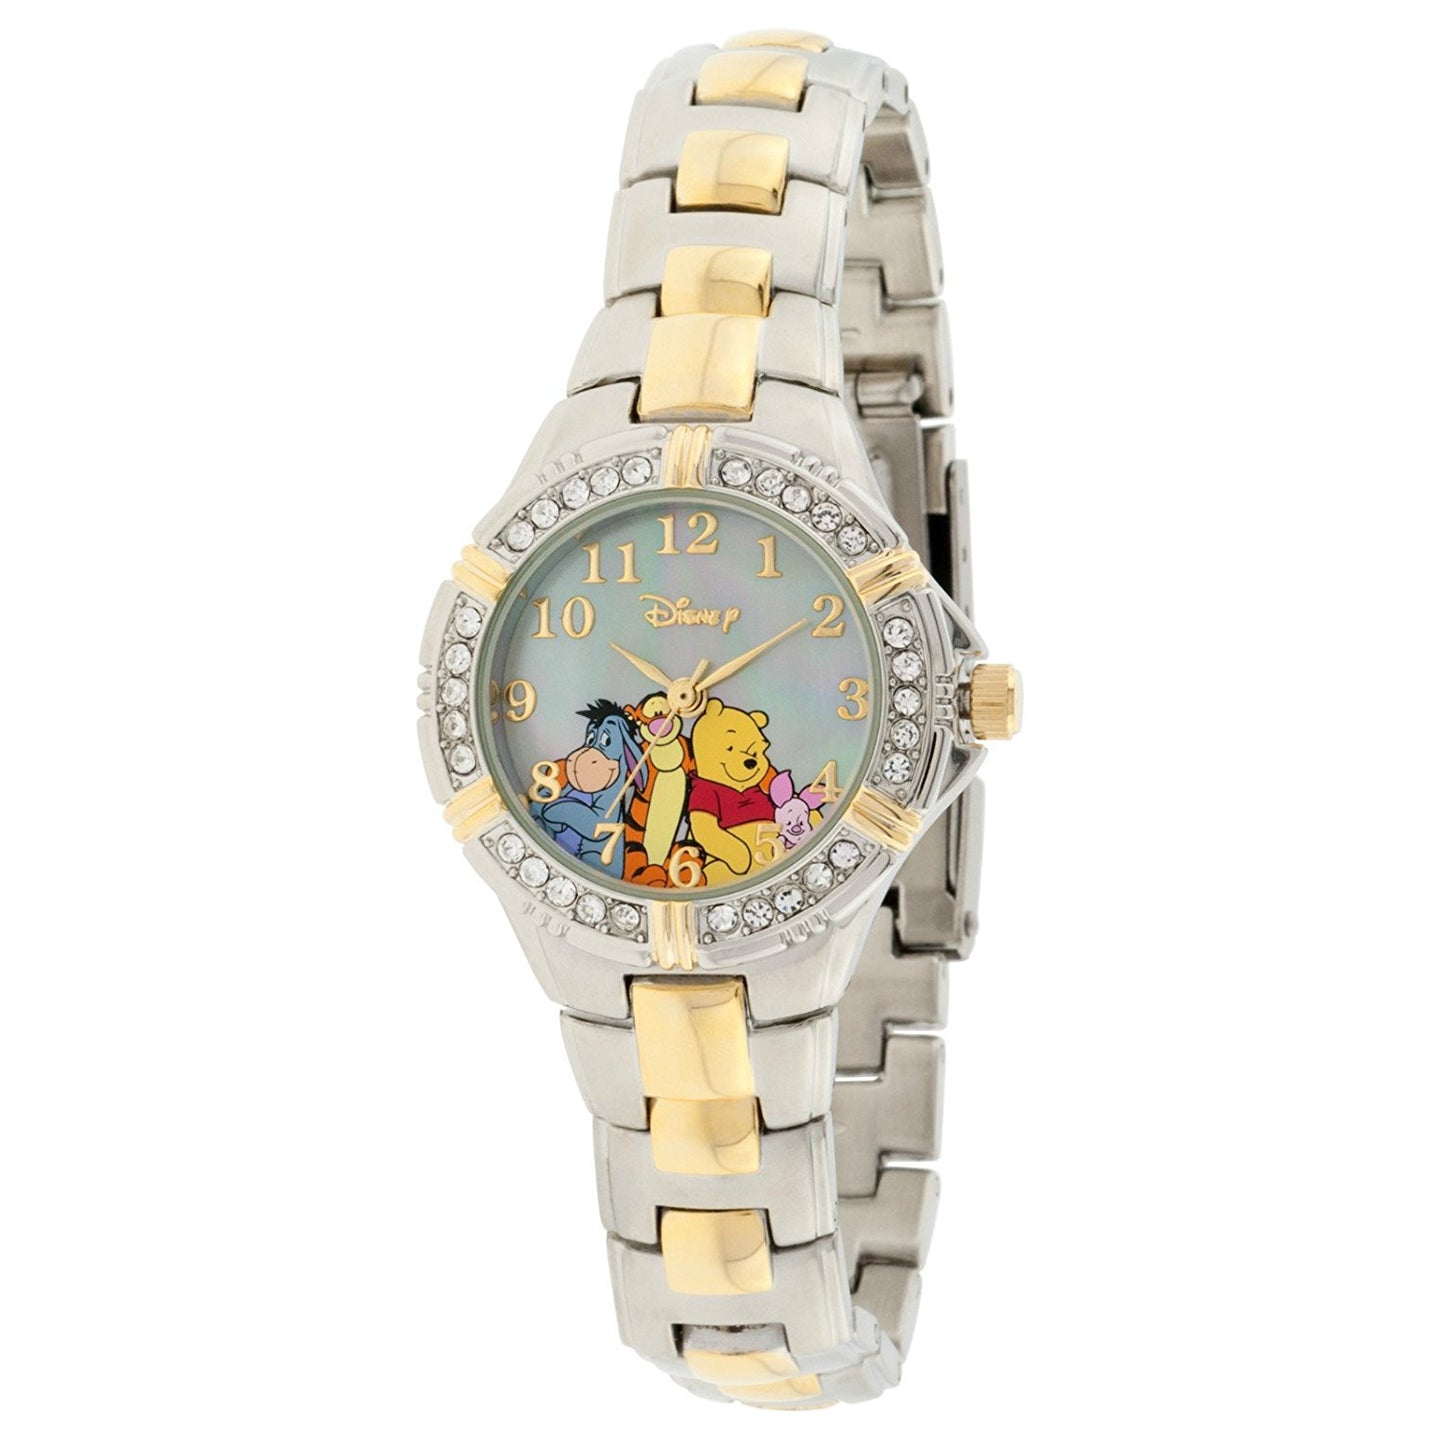 Disney Winnie the Pooh and Friends Two-Tone Bracelet Watch with Crystal Accents - WTP063